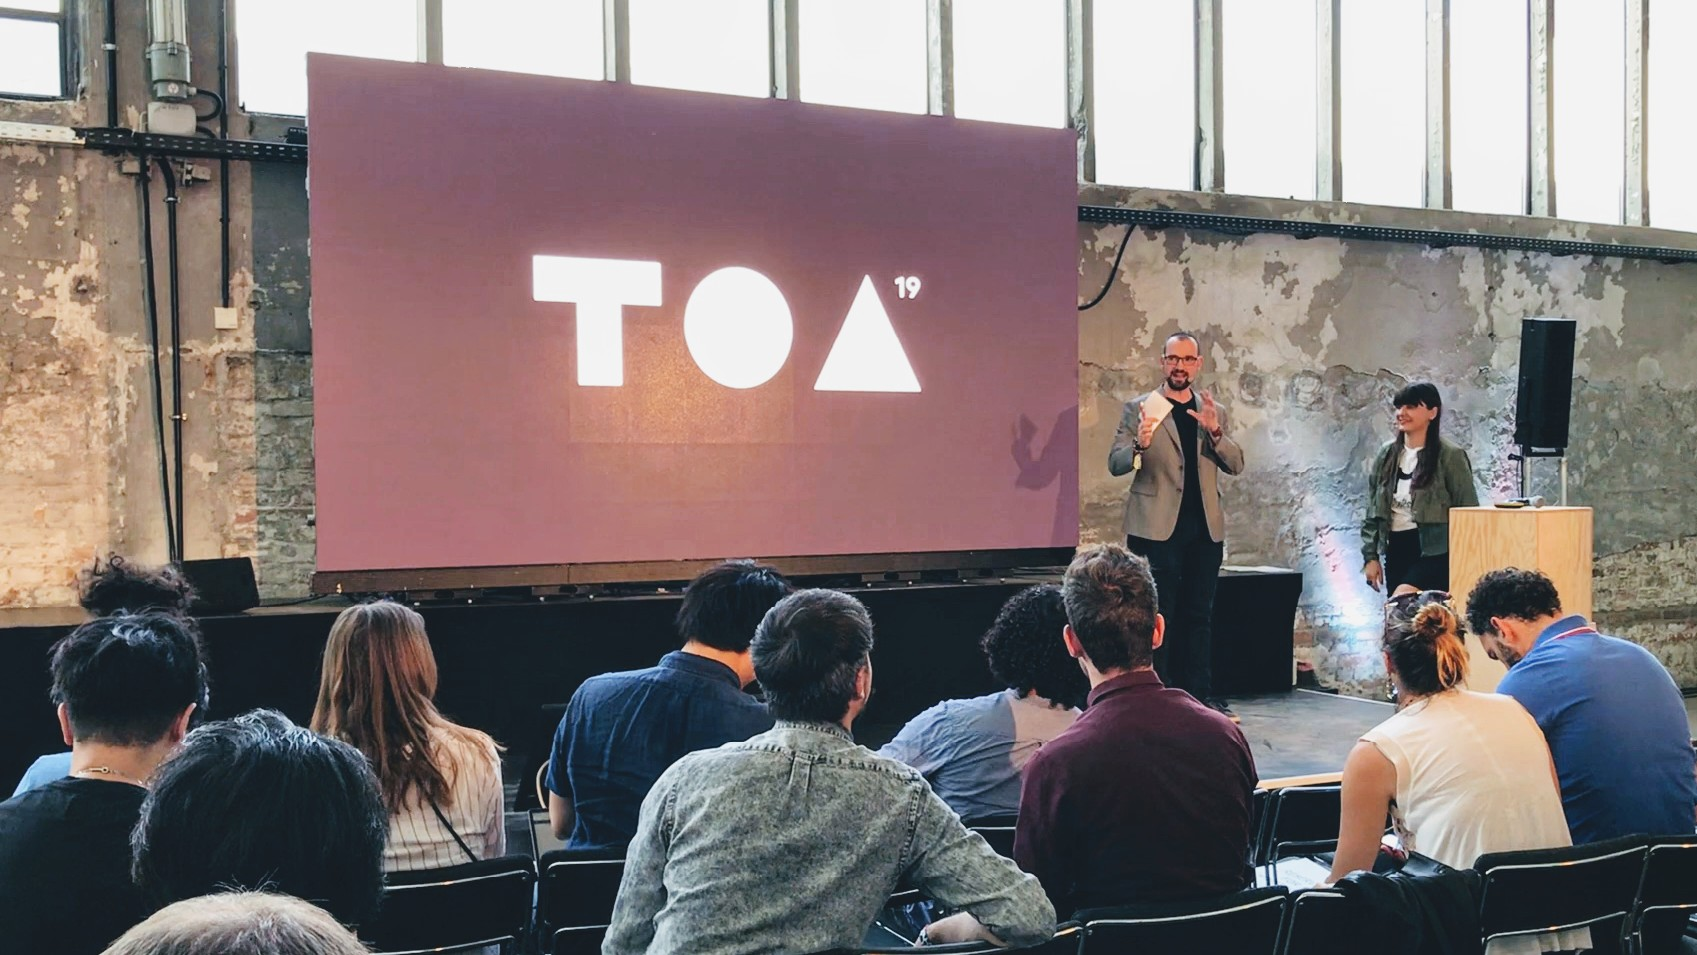 Mentessa's pitch at this year's Tech Open Air in Berlin